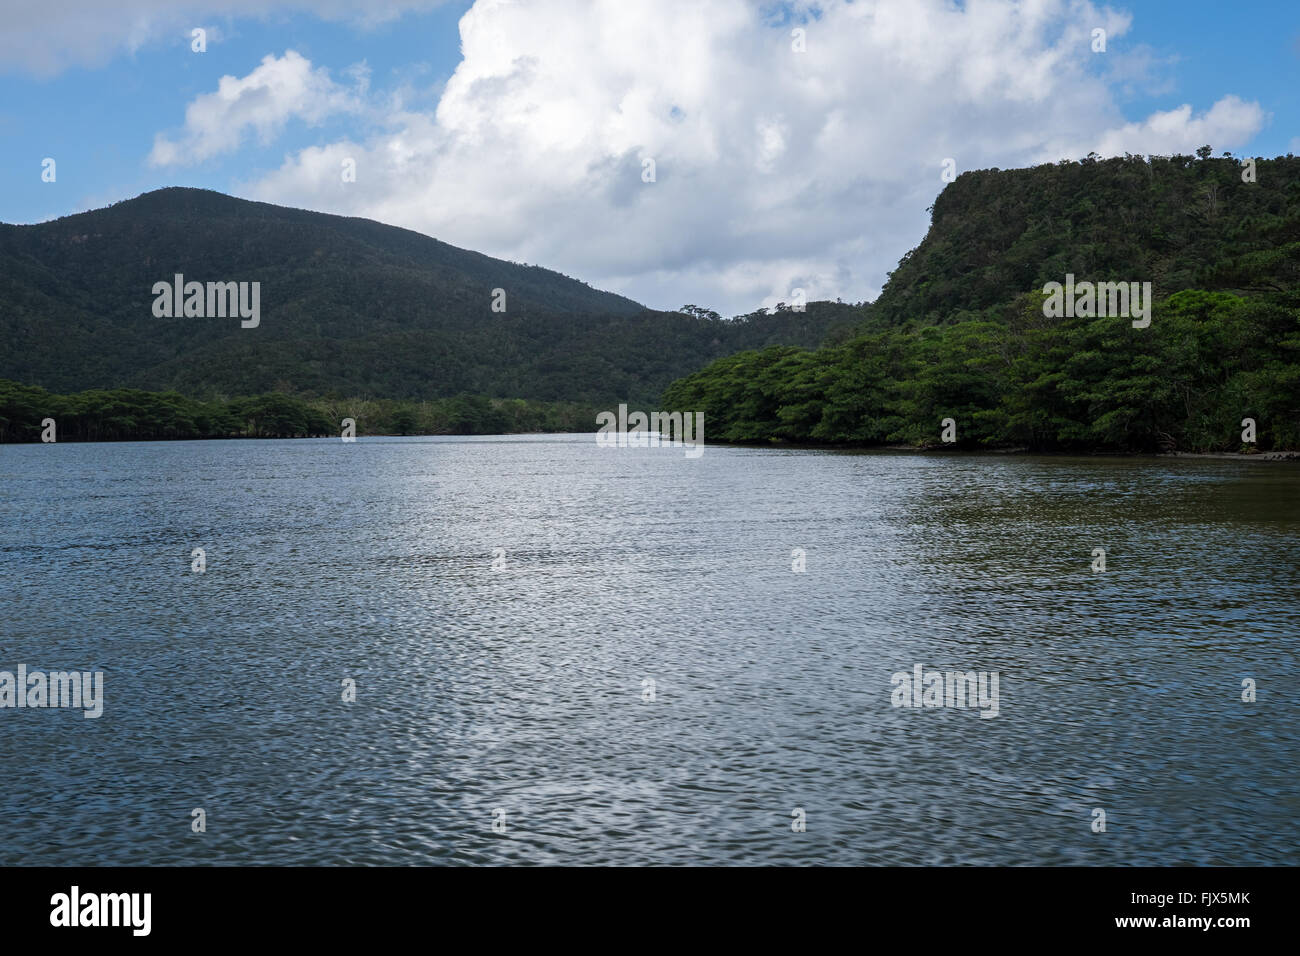 Scenic View Of Mountains By Lake Against Cloudy Sky - Stock Image